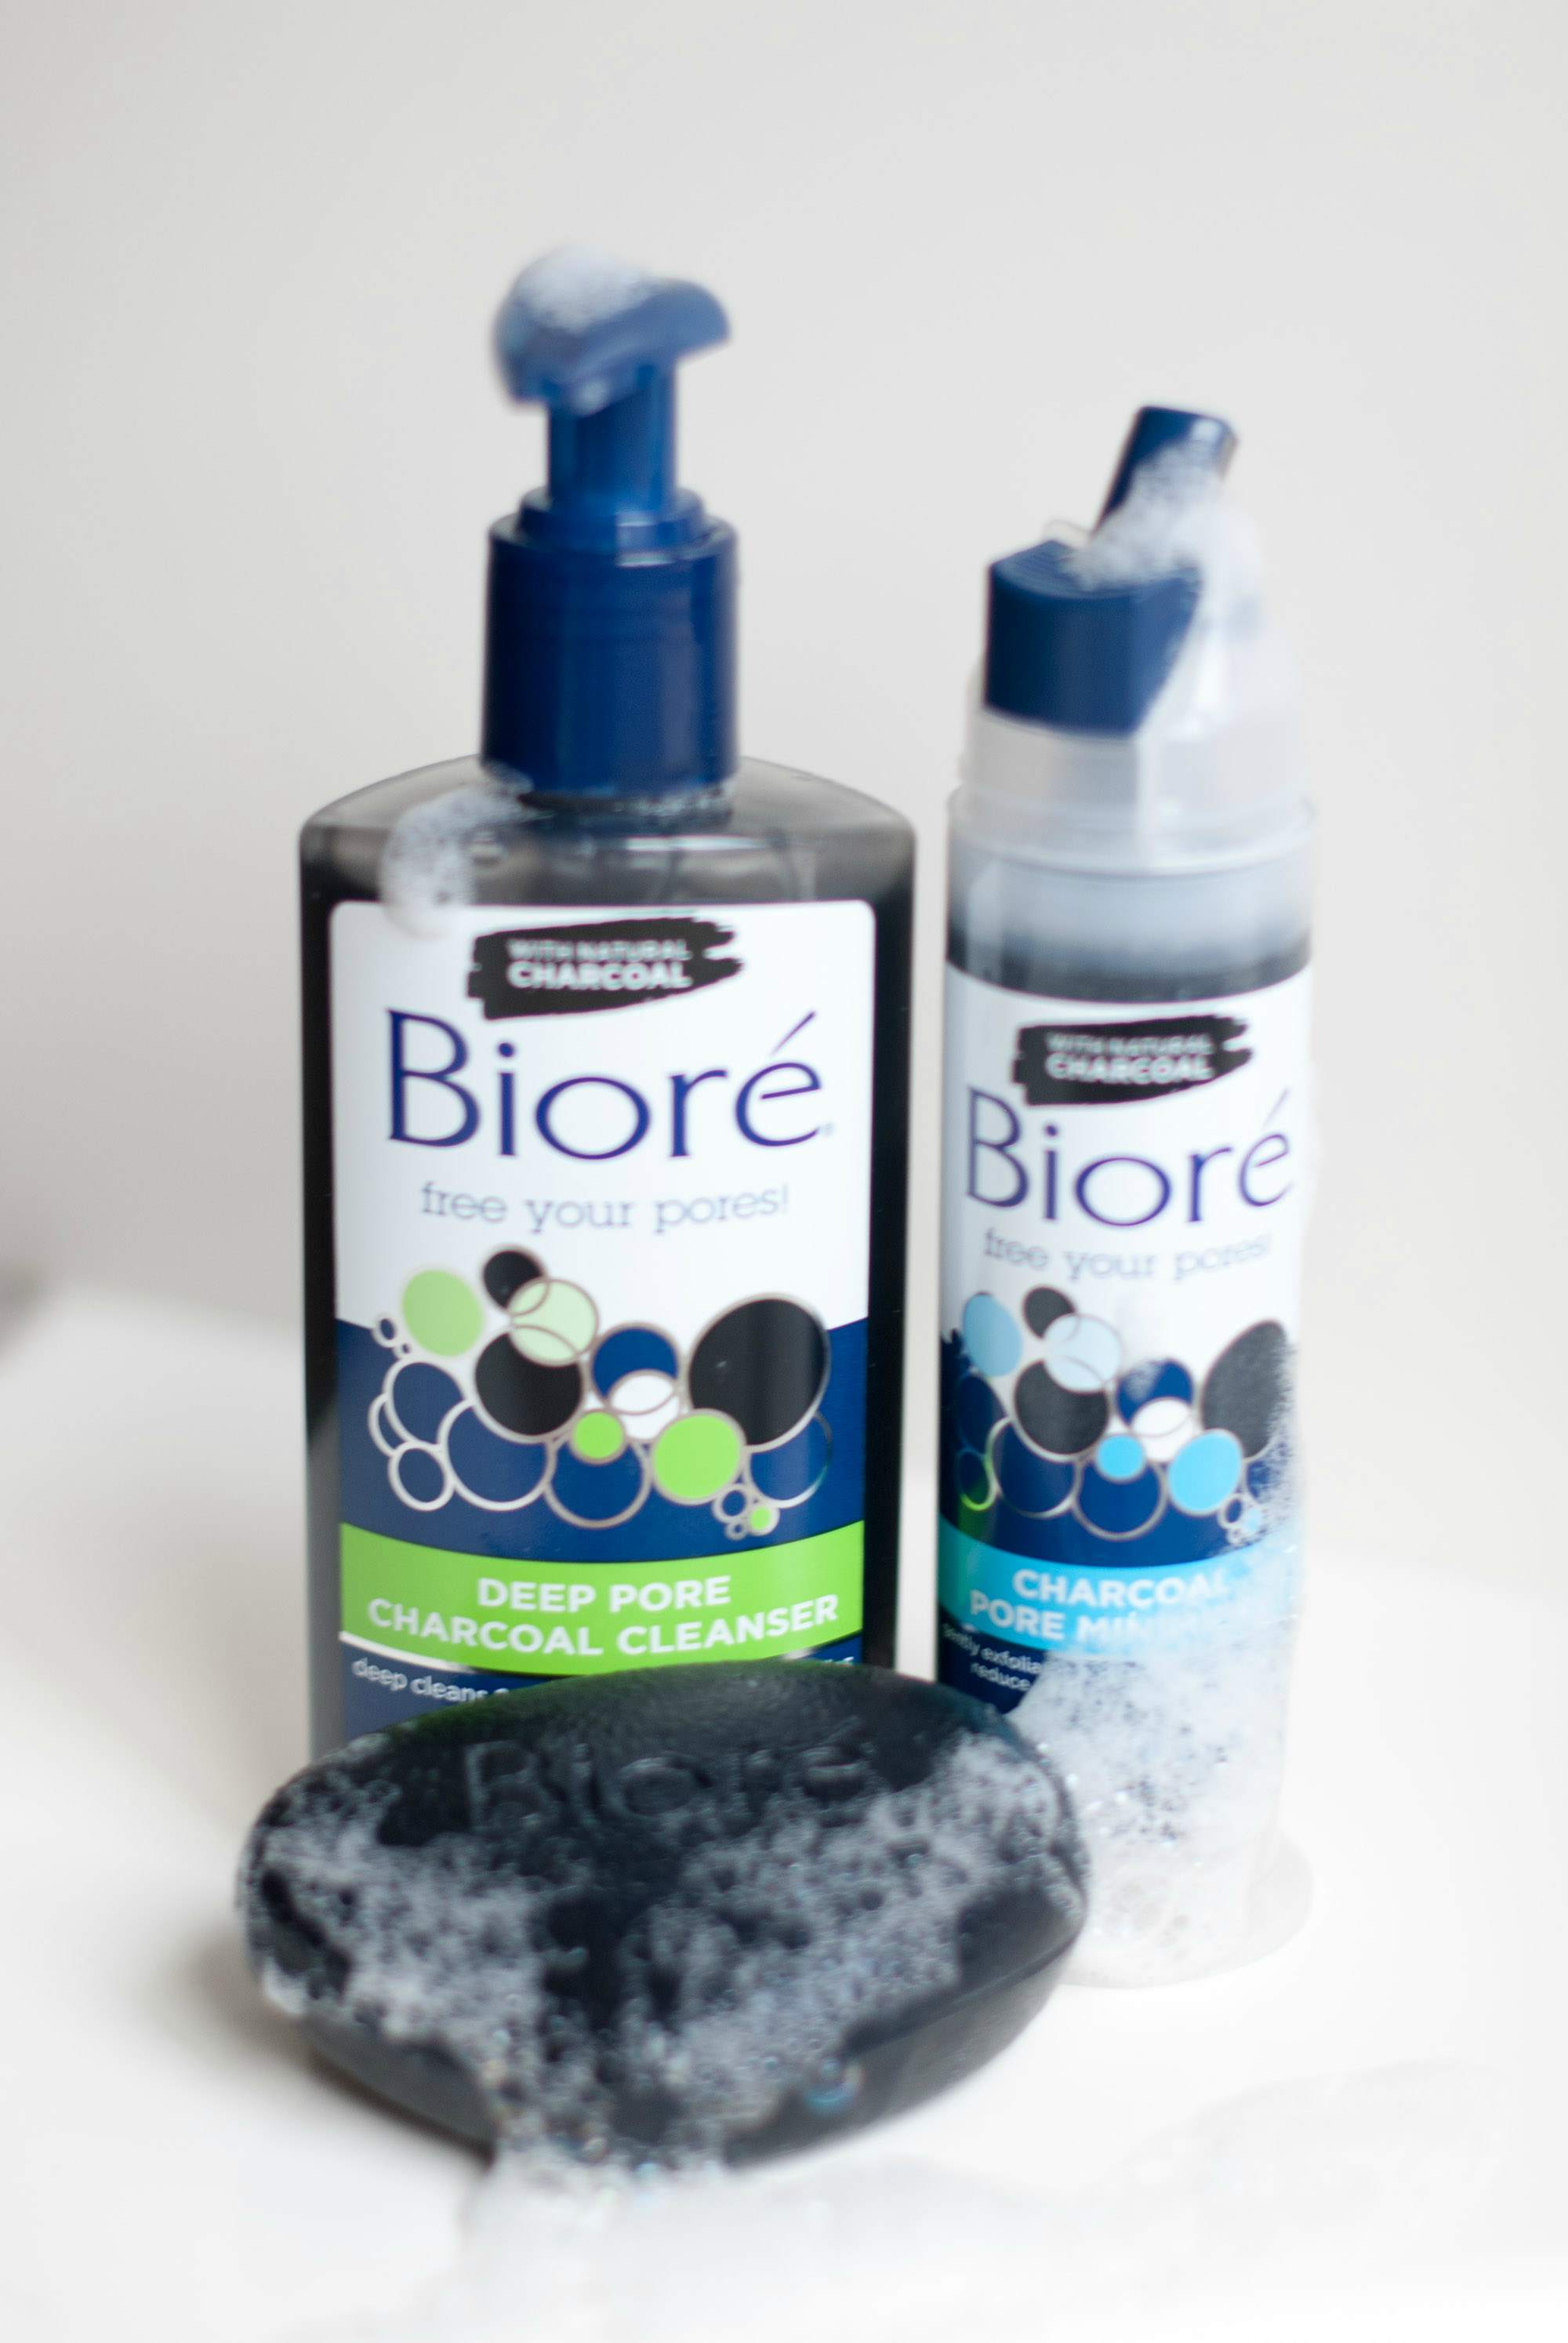 Spring Cleaning with Biore